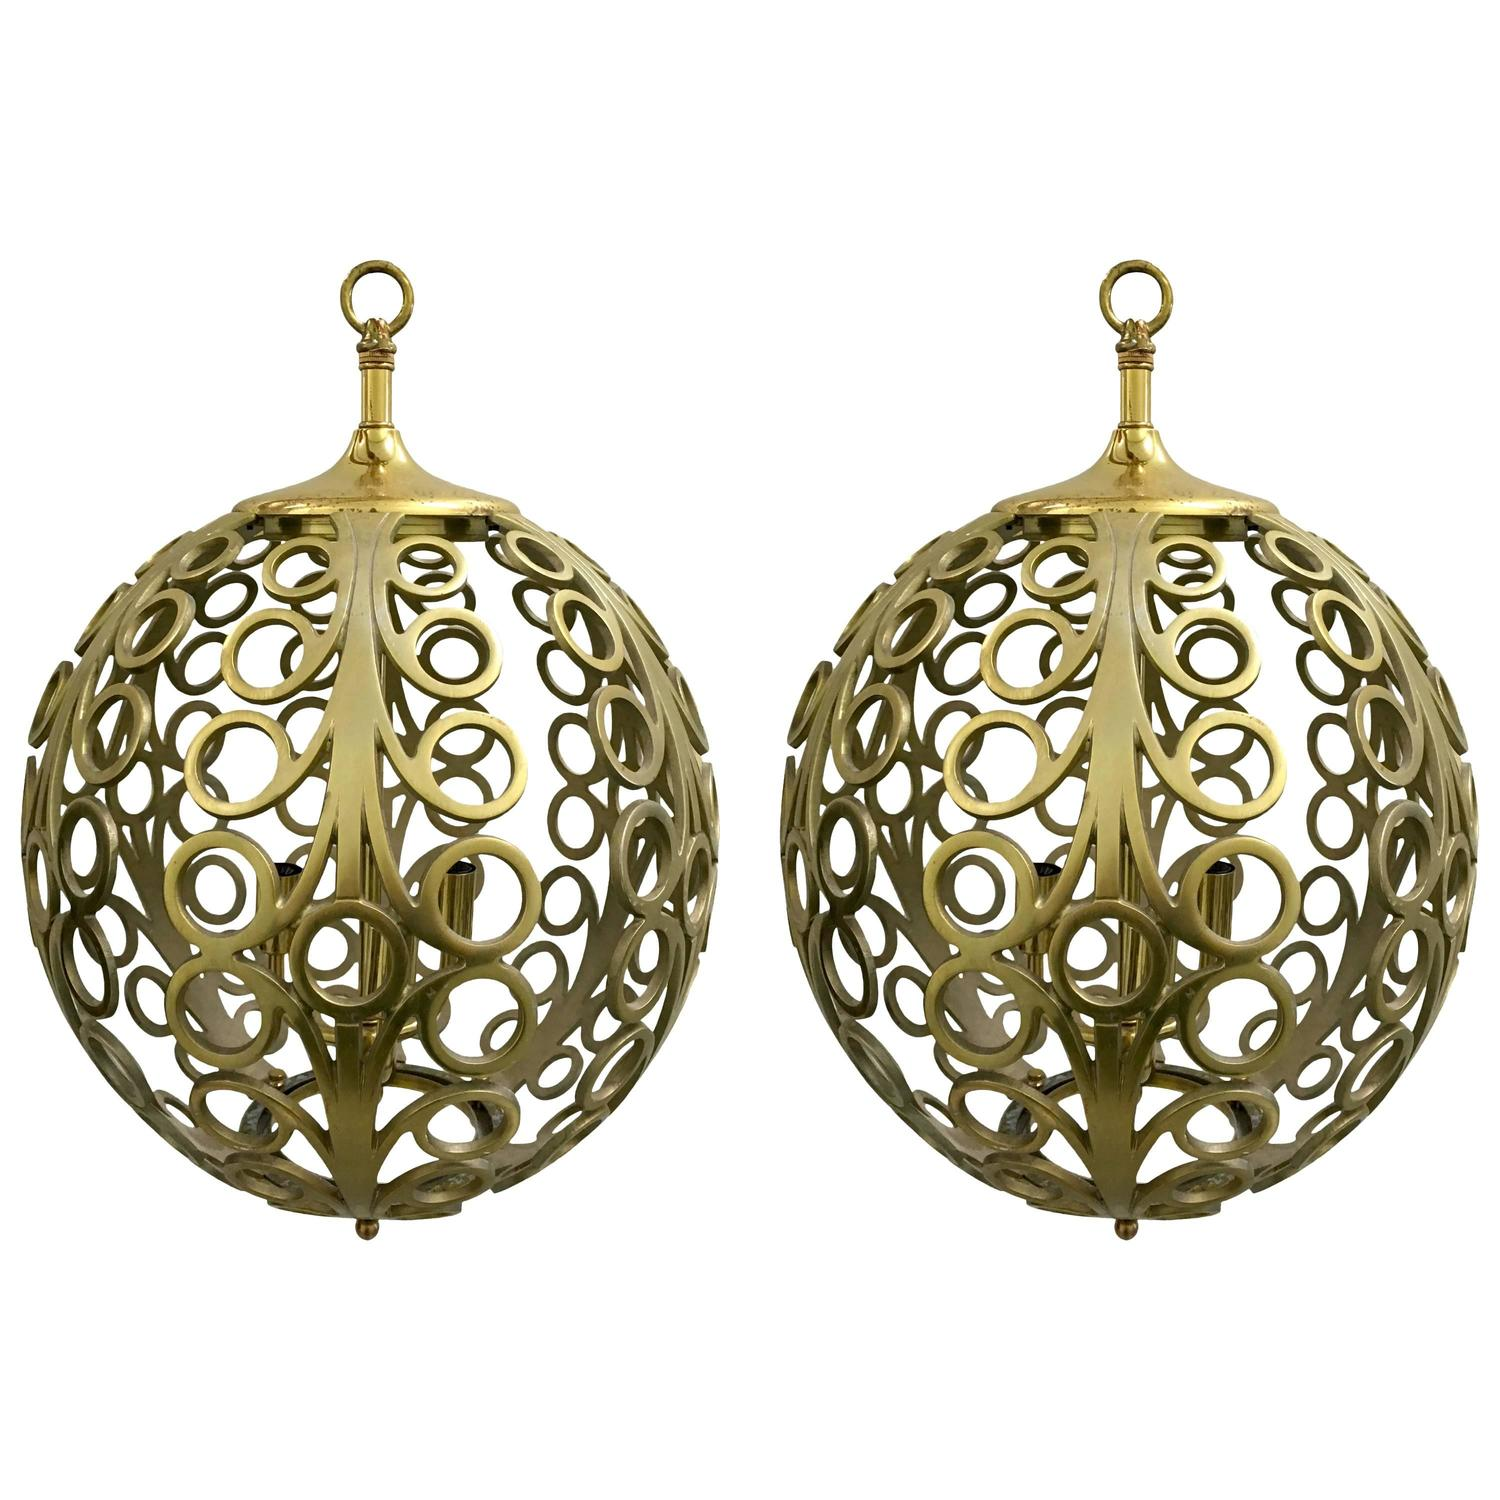 Pair of Pierced Brass Geometric Pendant Lights For Sale at ...